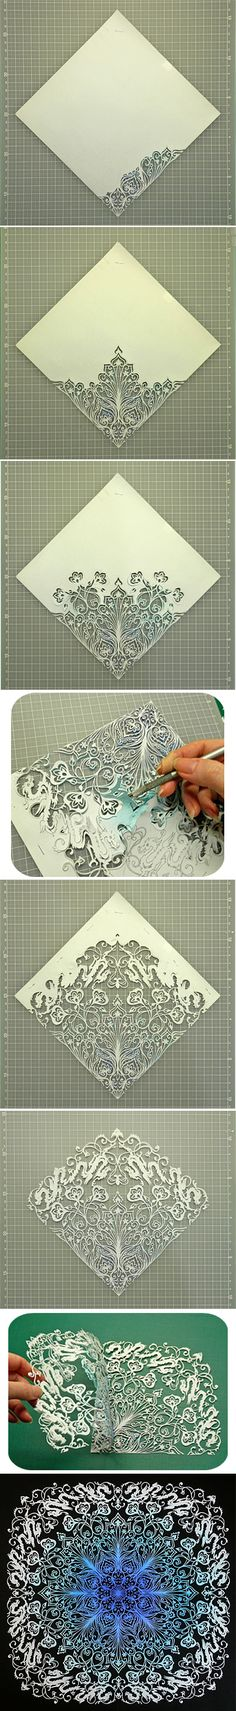 Kirigami Art  japon